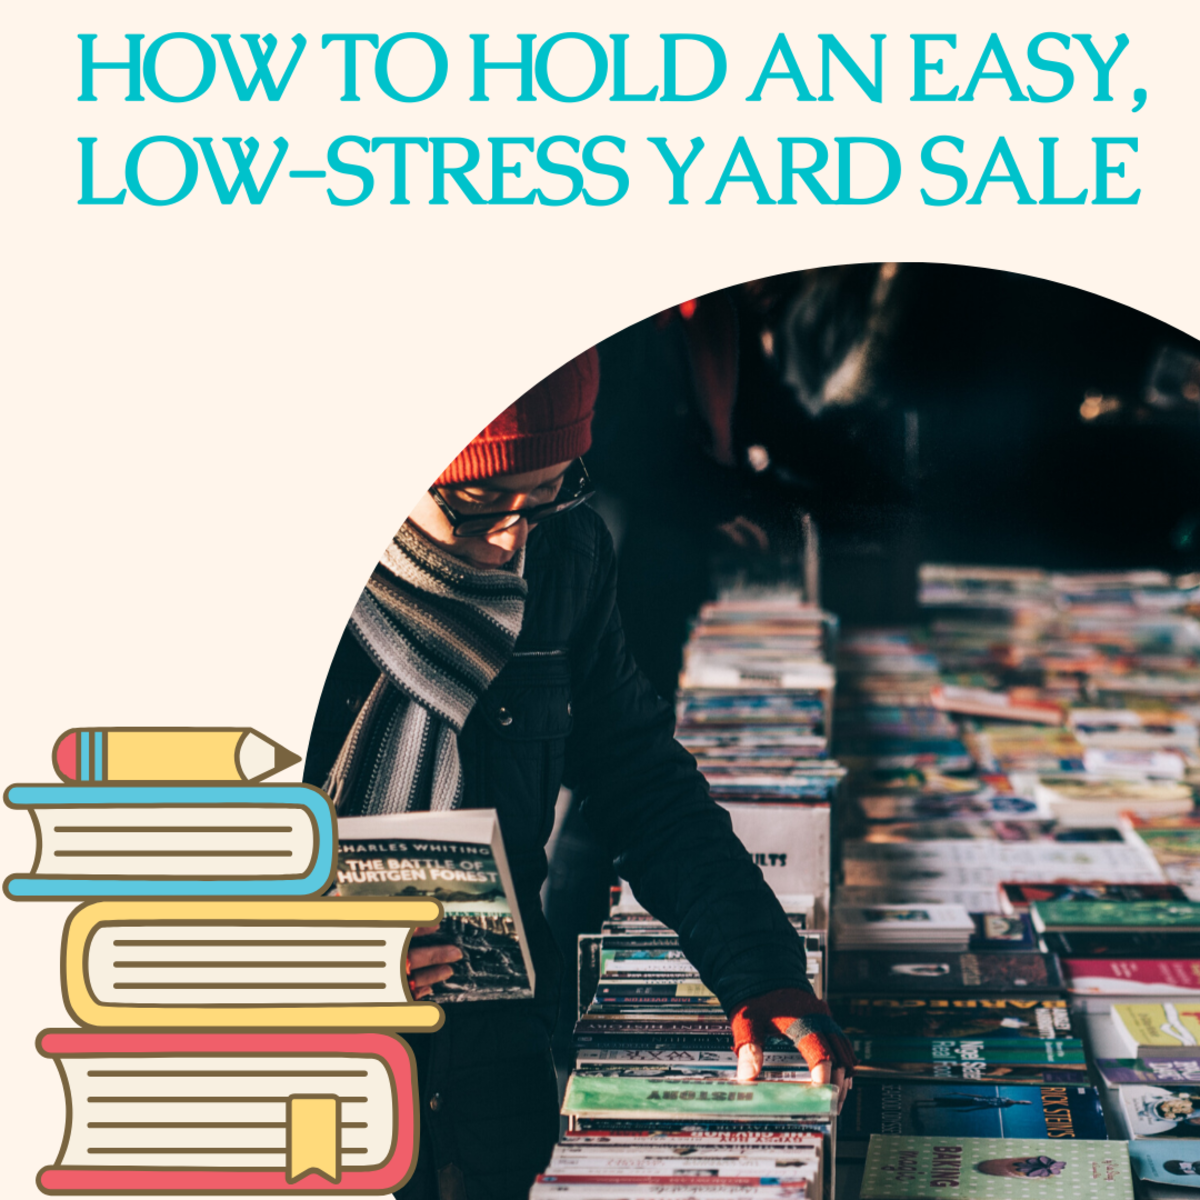 How to Hold an Easy, Low-Stress Yard Sale